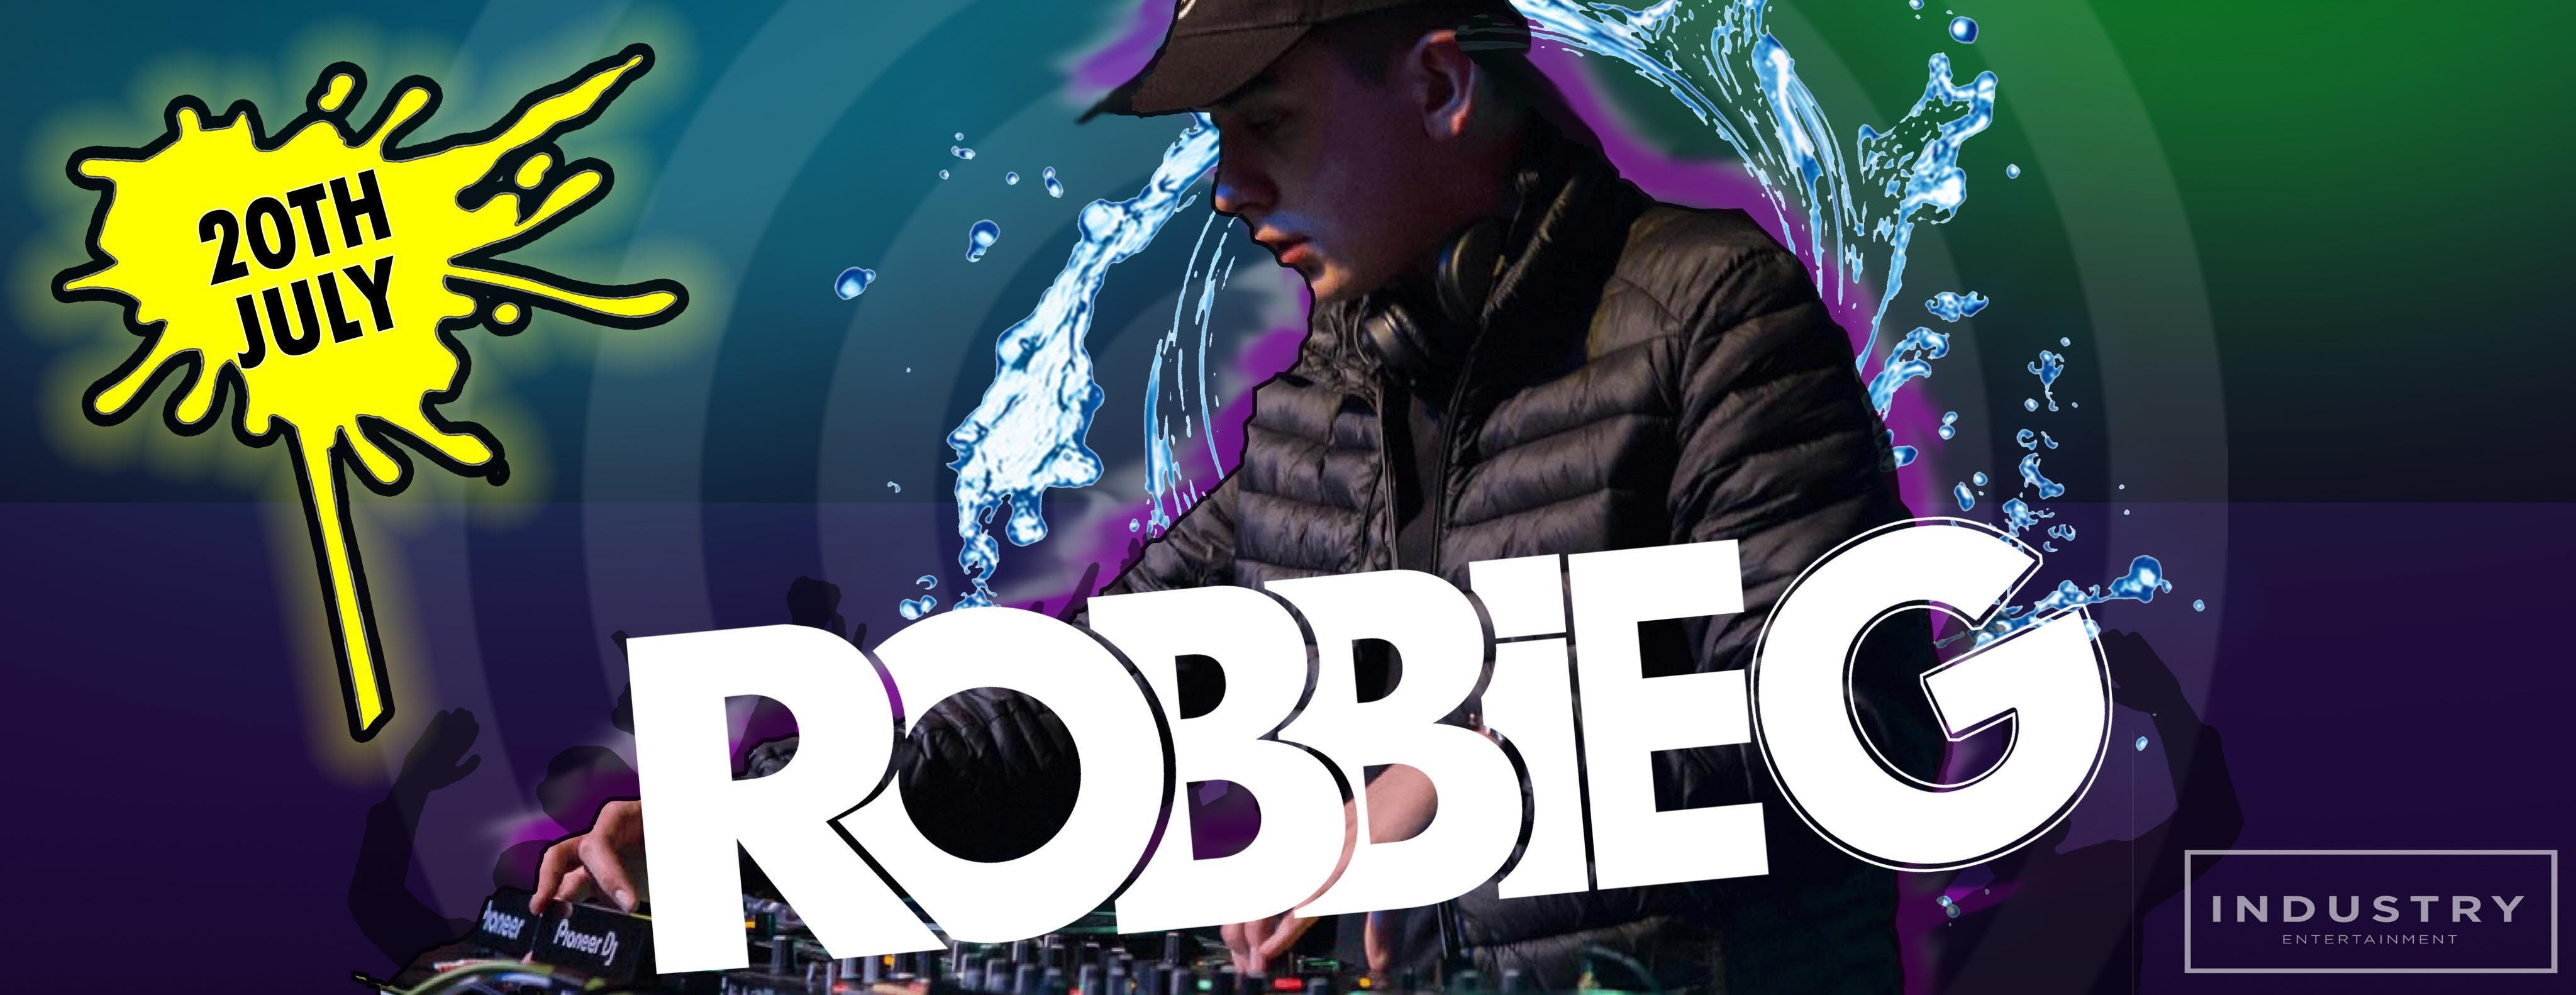 Robbie G live at The C.I. Bar Athy Co Kildare